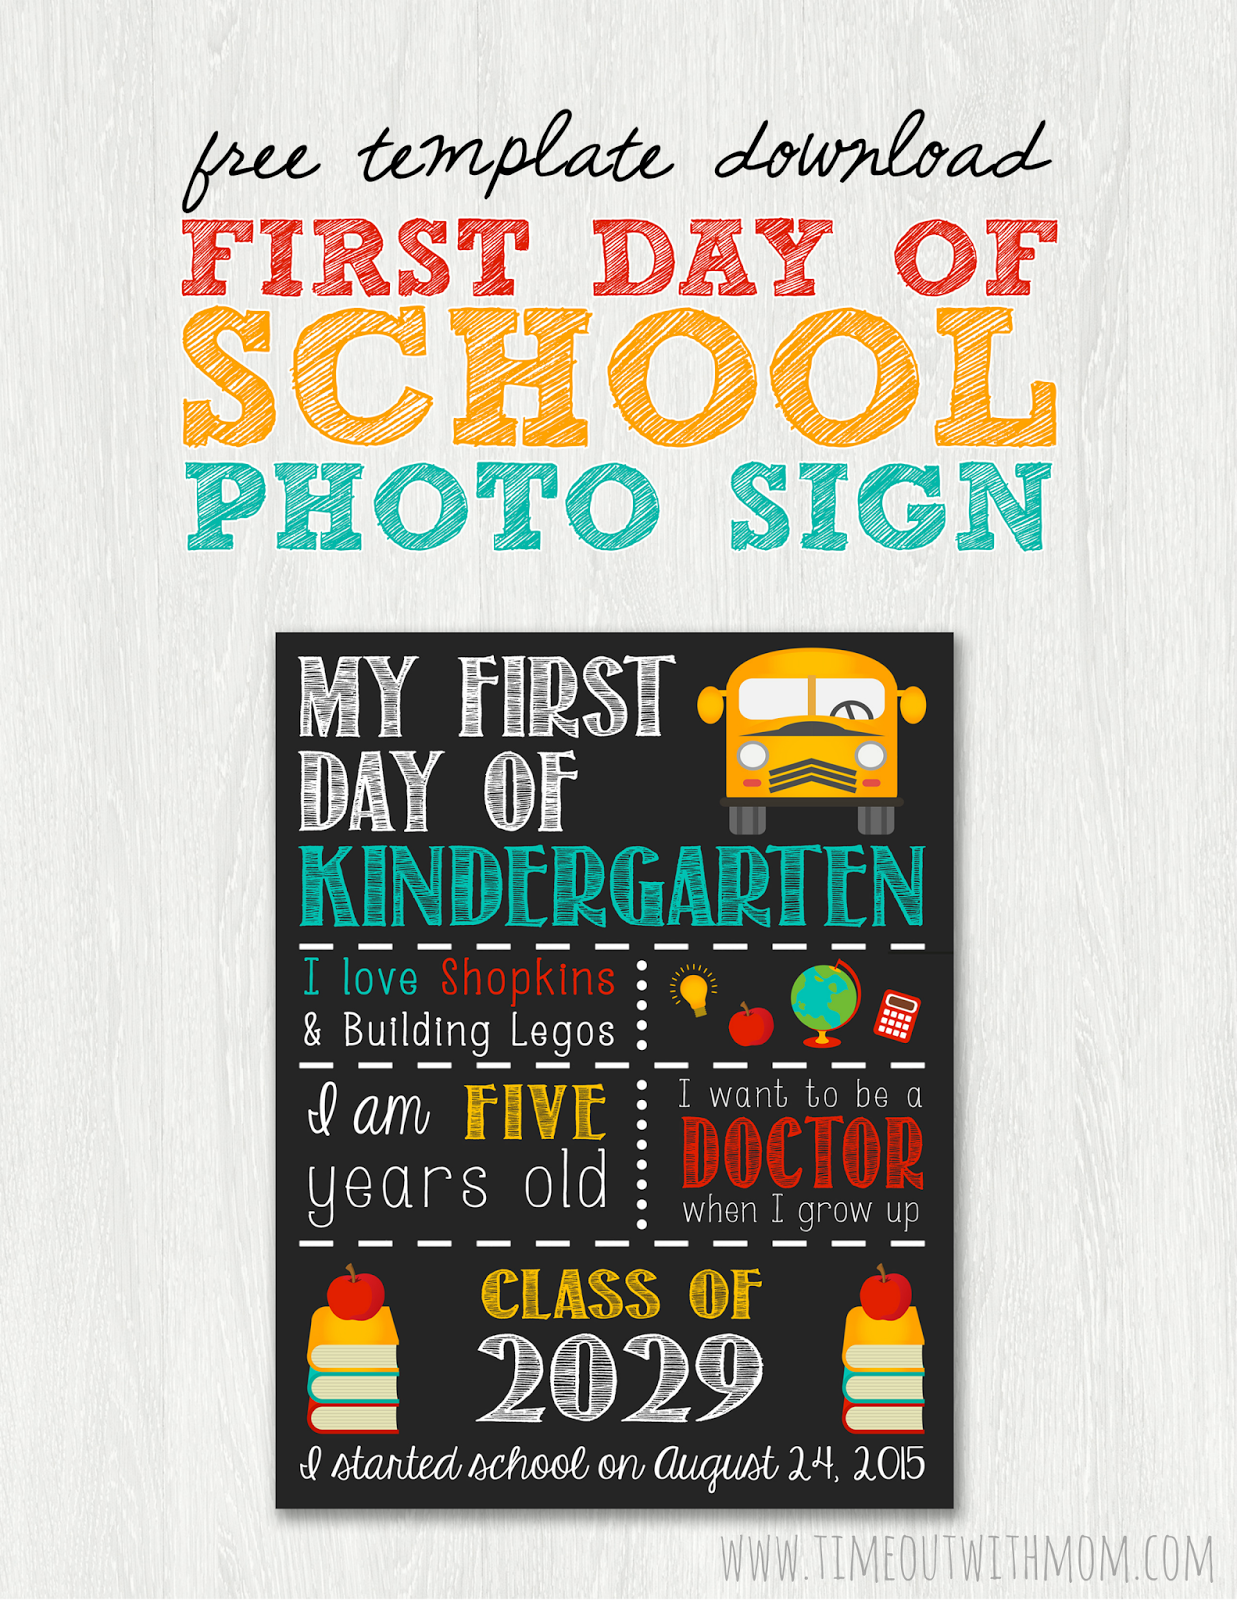 photograph regarding First Day of School Sign Printable called Back again in direction of Faculty Signal Template and Guideline